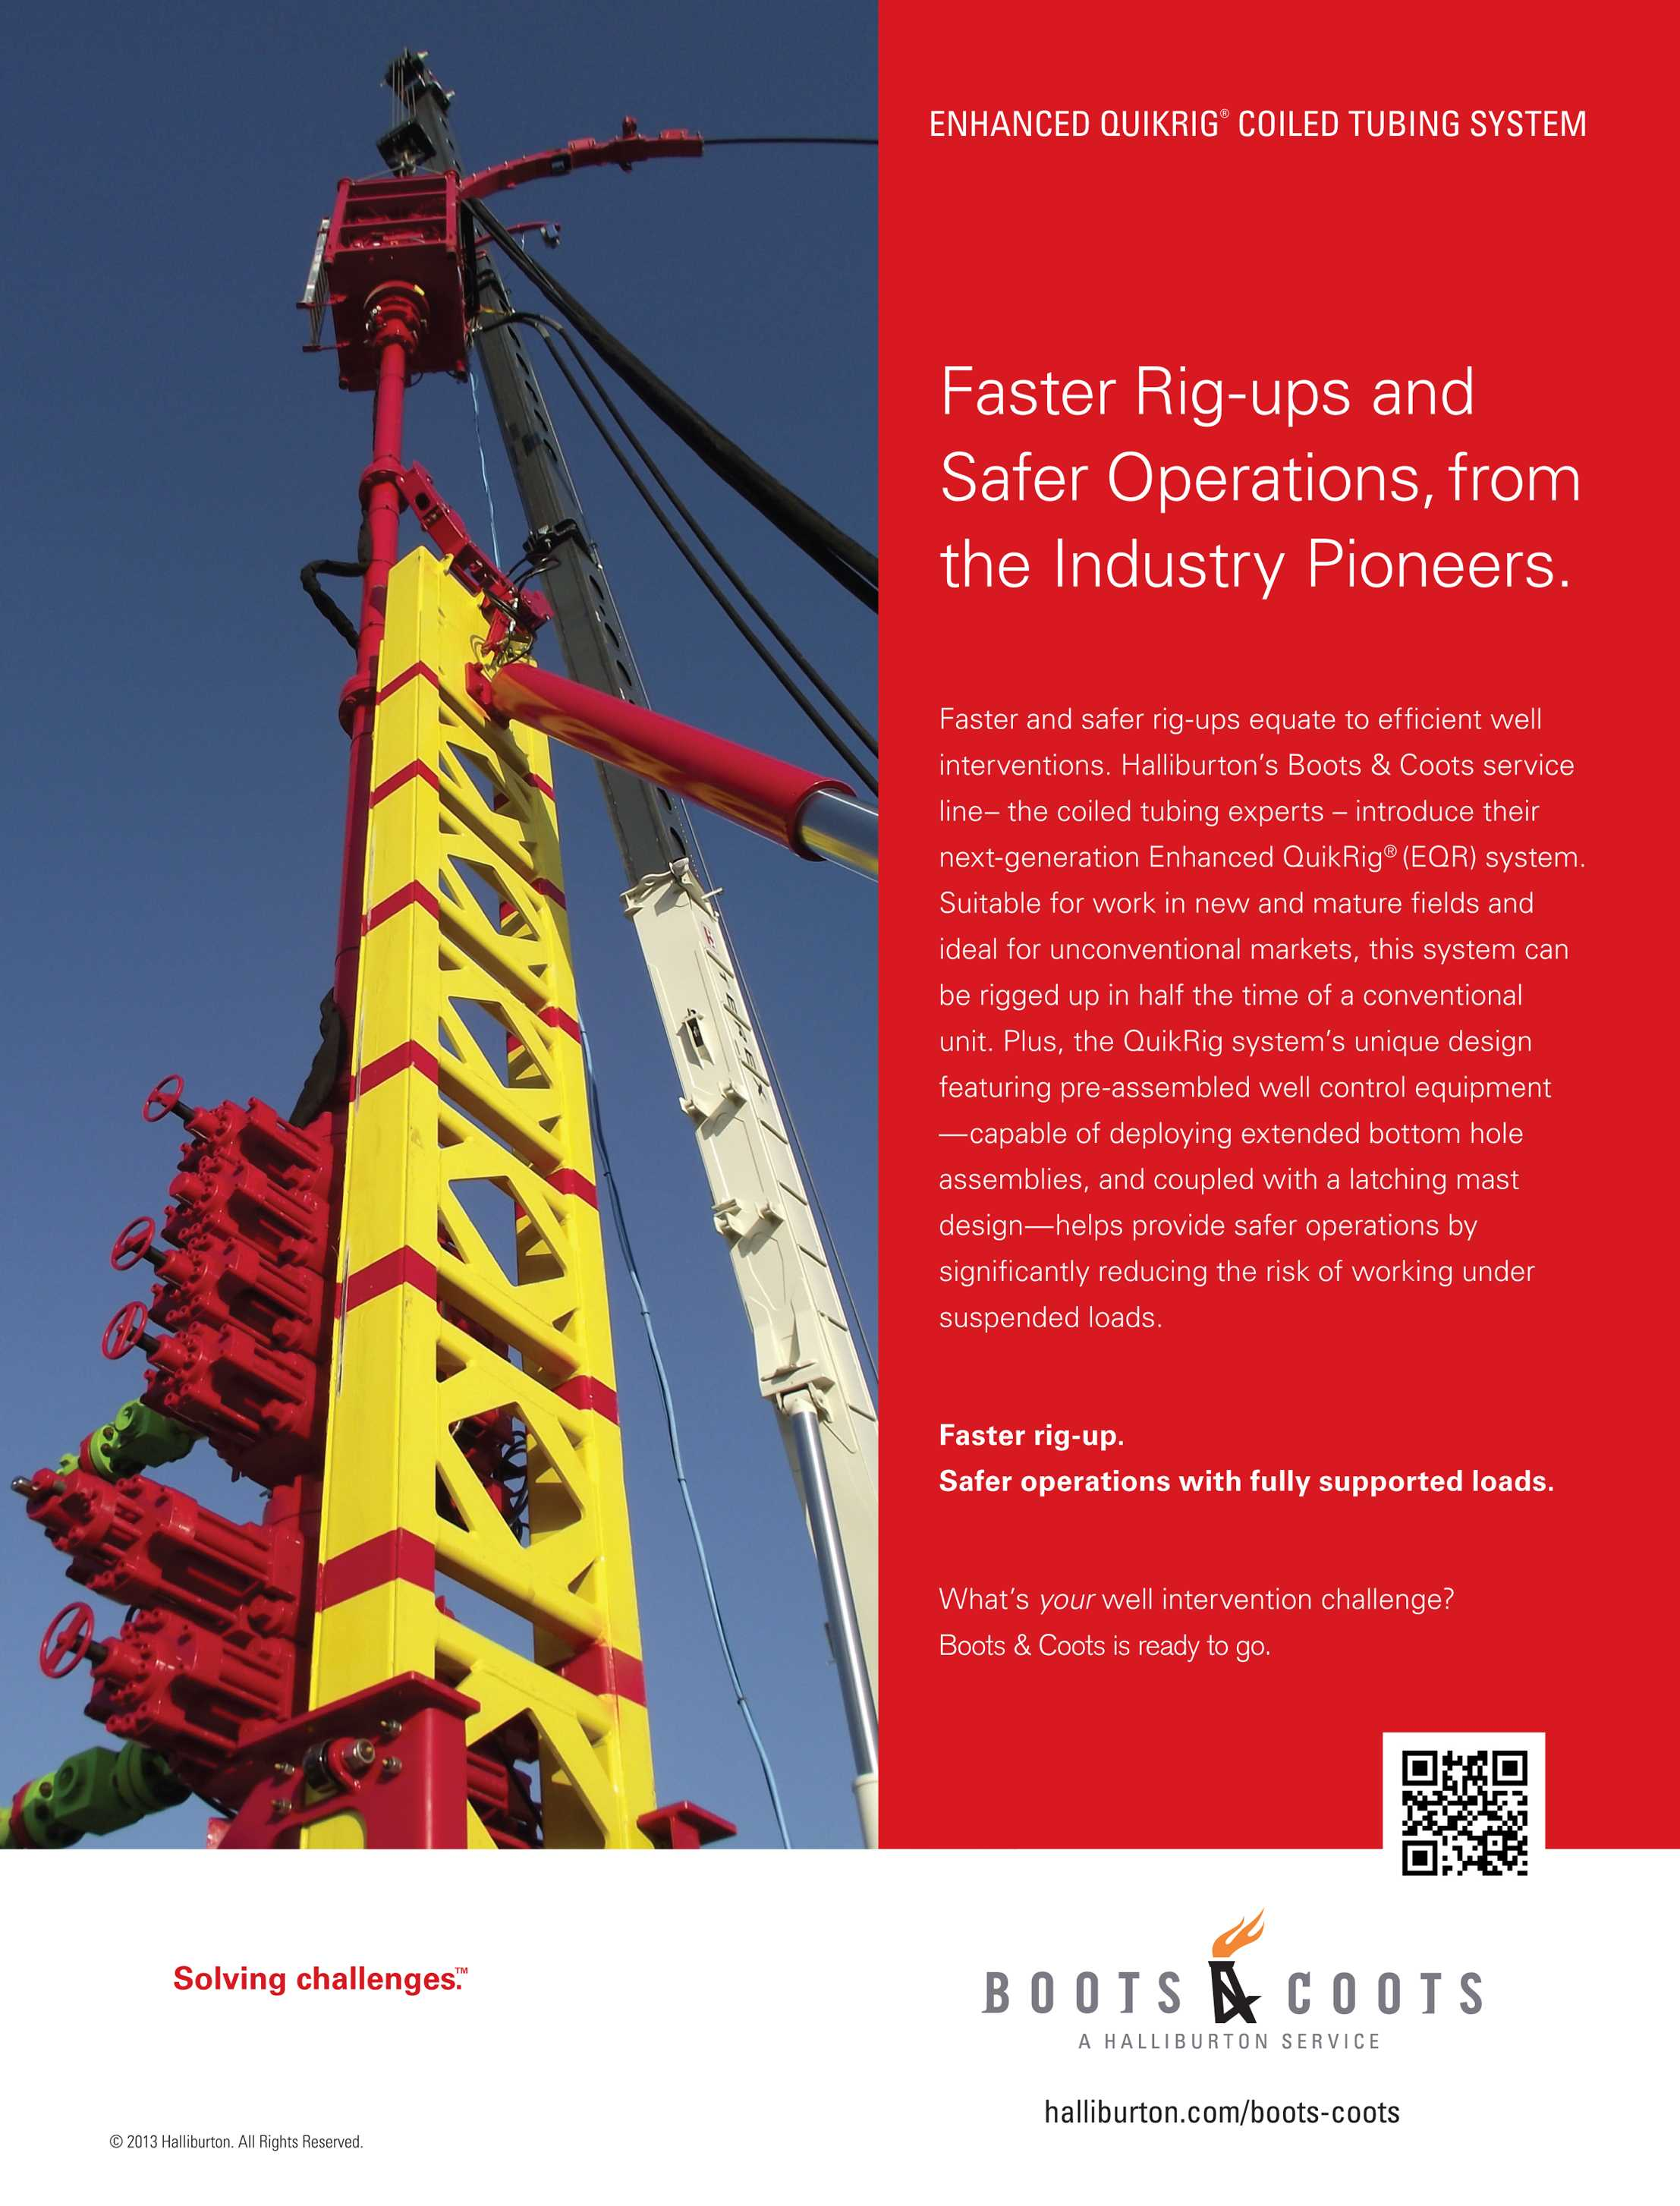 Oil & Gas Journal - September 2, 2013 - page C2